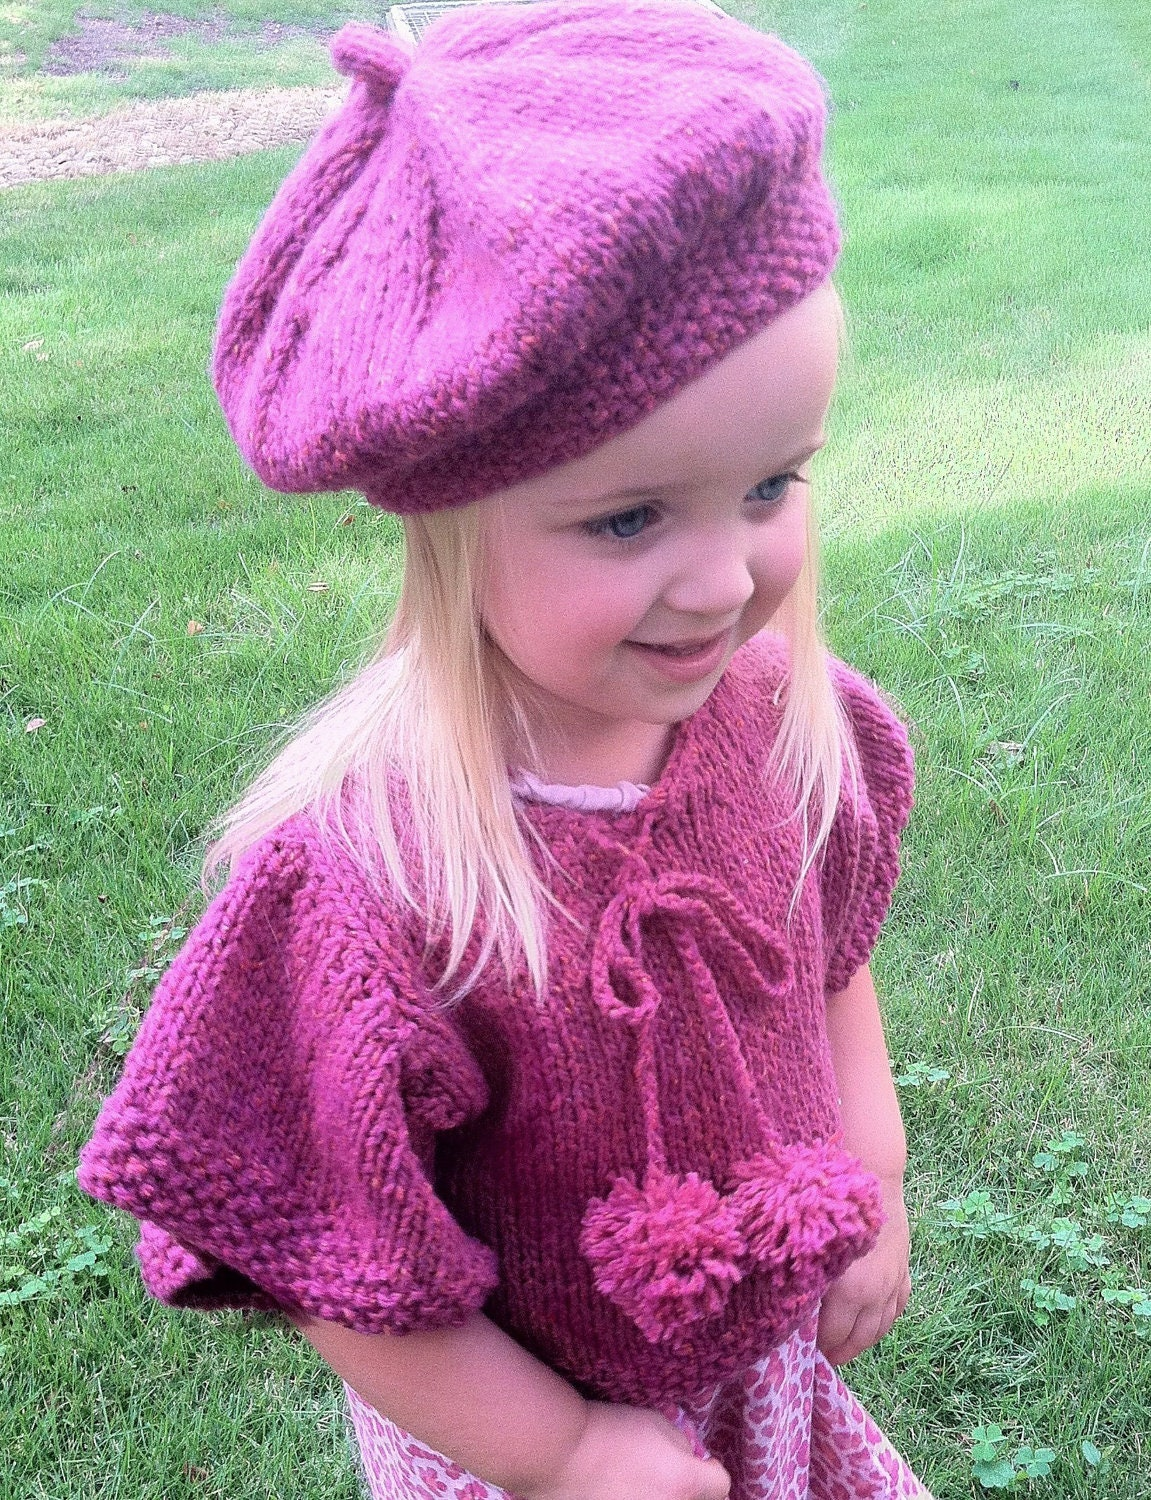 Items similar to The Tesslyn Knit Capelet / Poncho and Beret pattern, toddler...